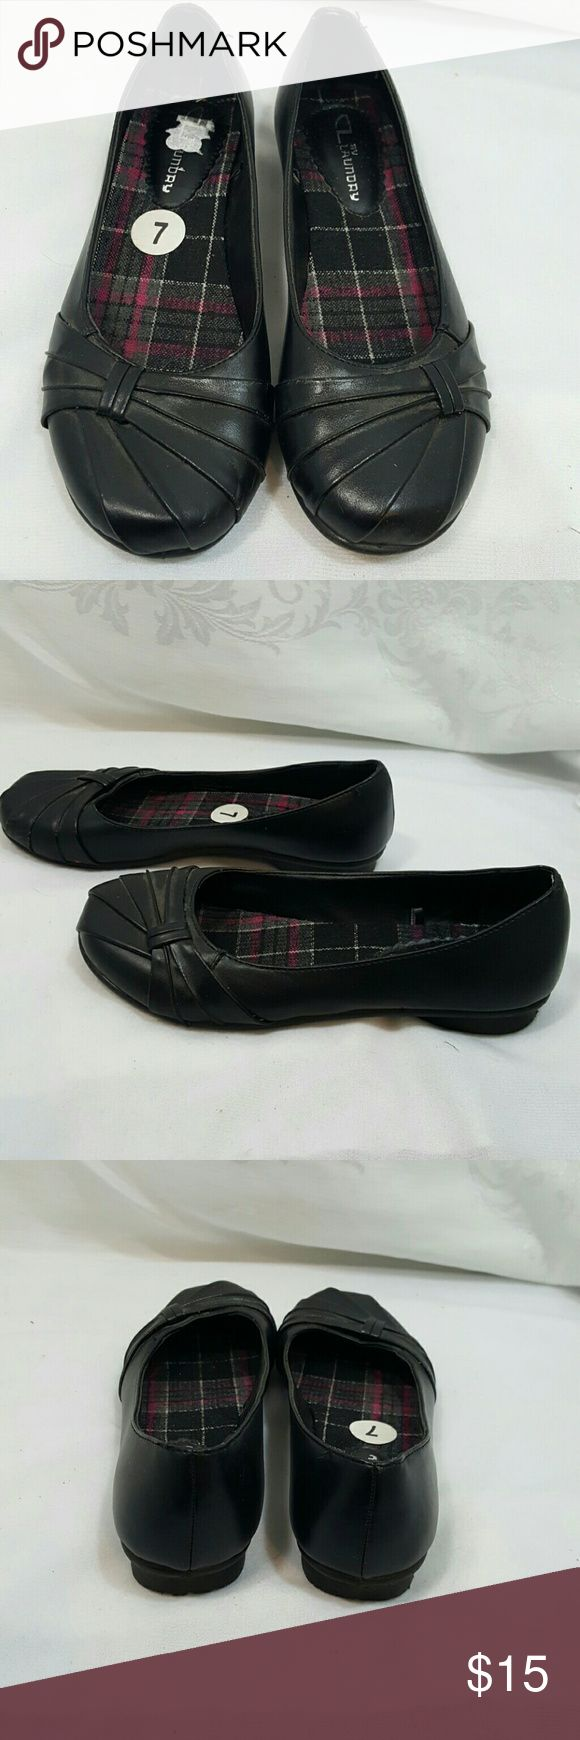 Chinese Laundry Black Flats Size 7 Flats Chinese Laundry Shoes Flats & Loafers